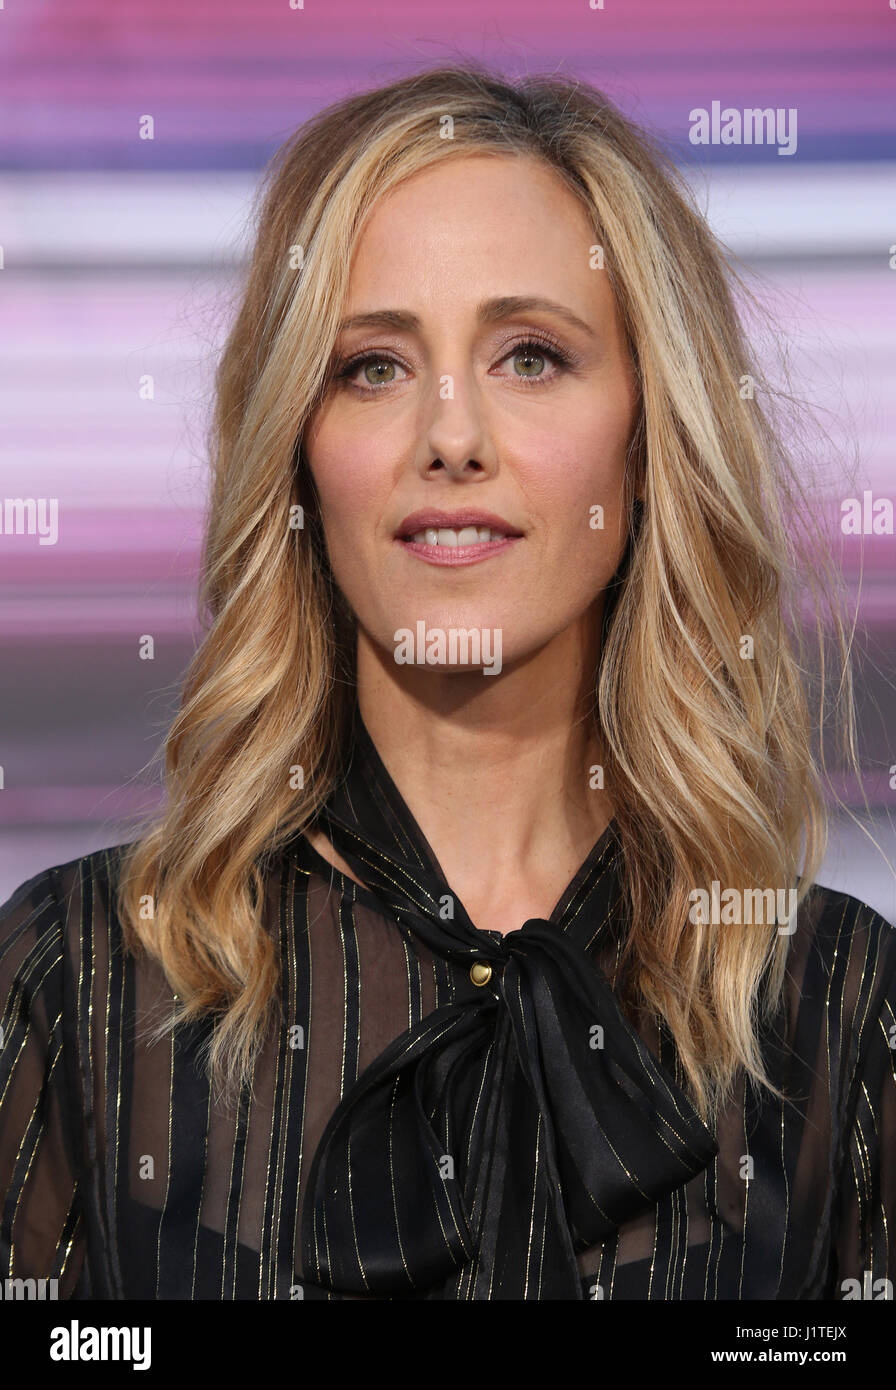 Kim Raver nudes (13 photo), Topless, Is a cute, Twitter, braless 2018